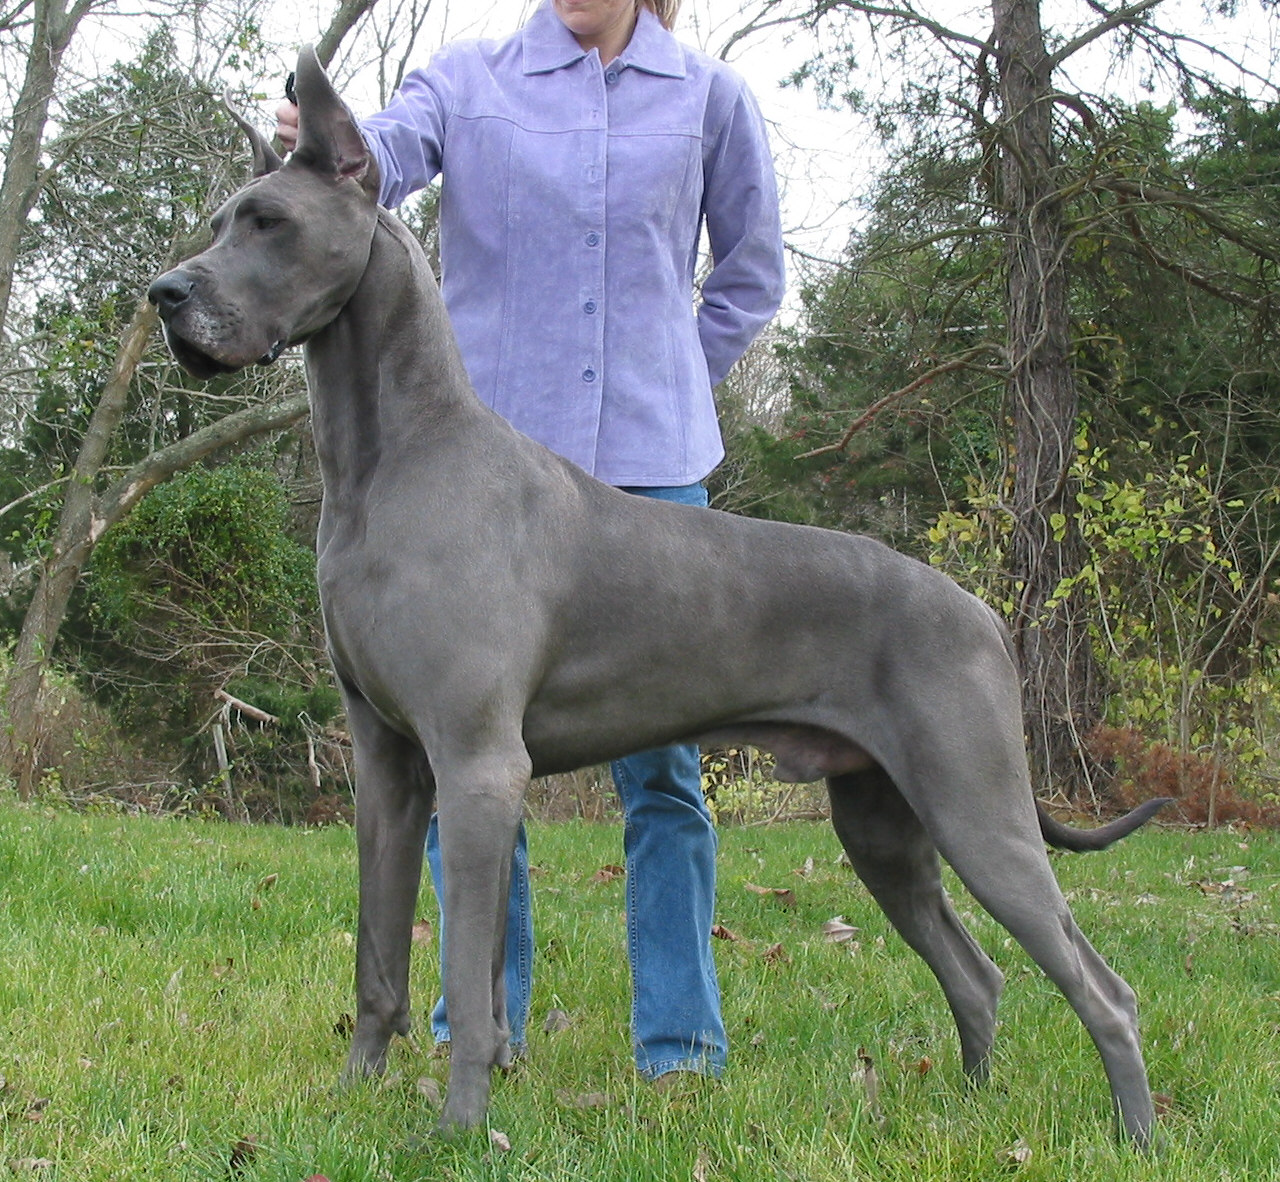 Dog breeds pictures and wallpapers: Great Dane dog